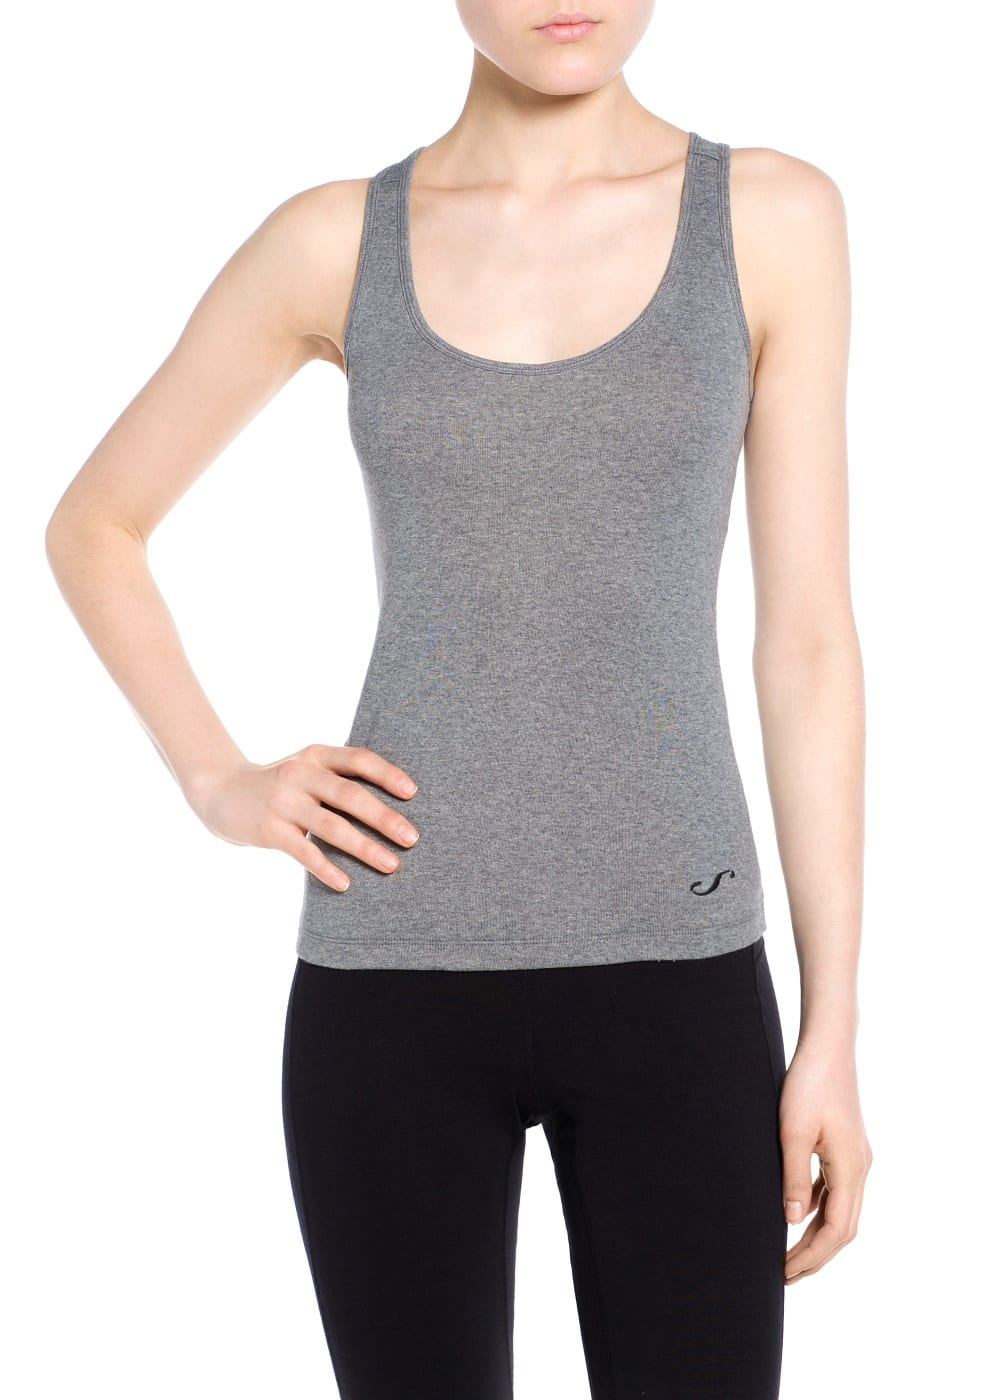 Yoga - Camiseta soft sport